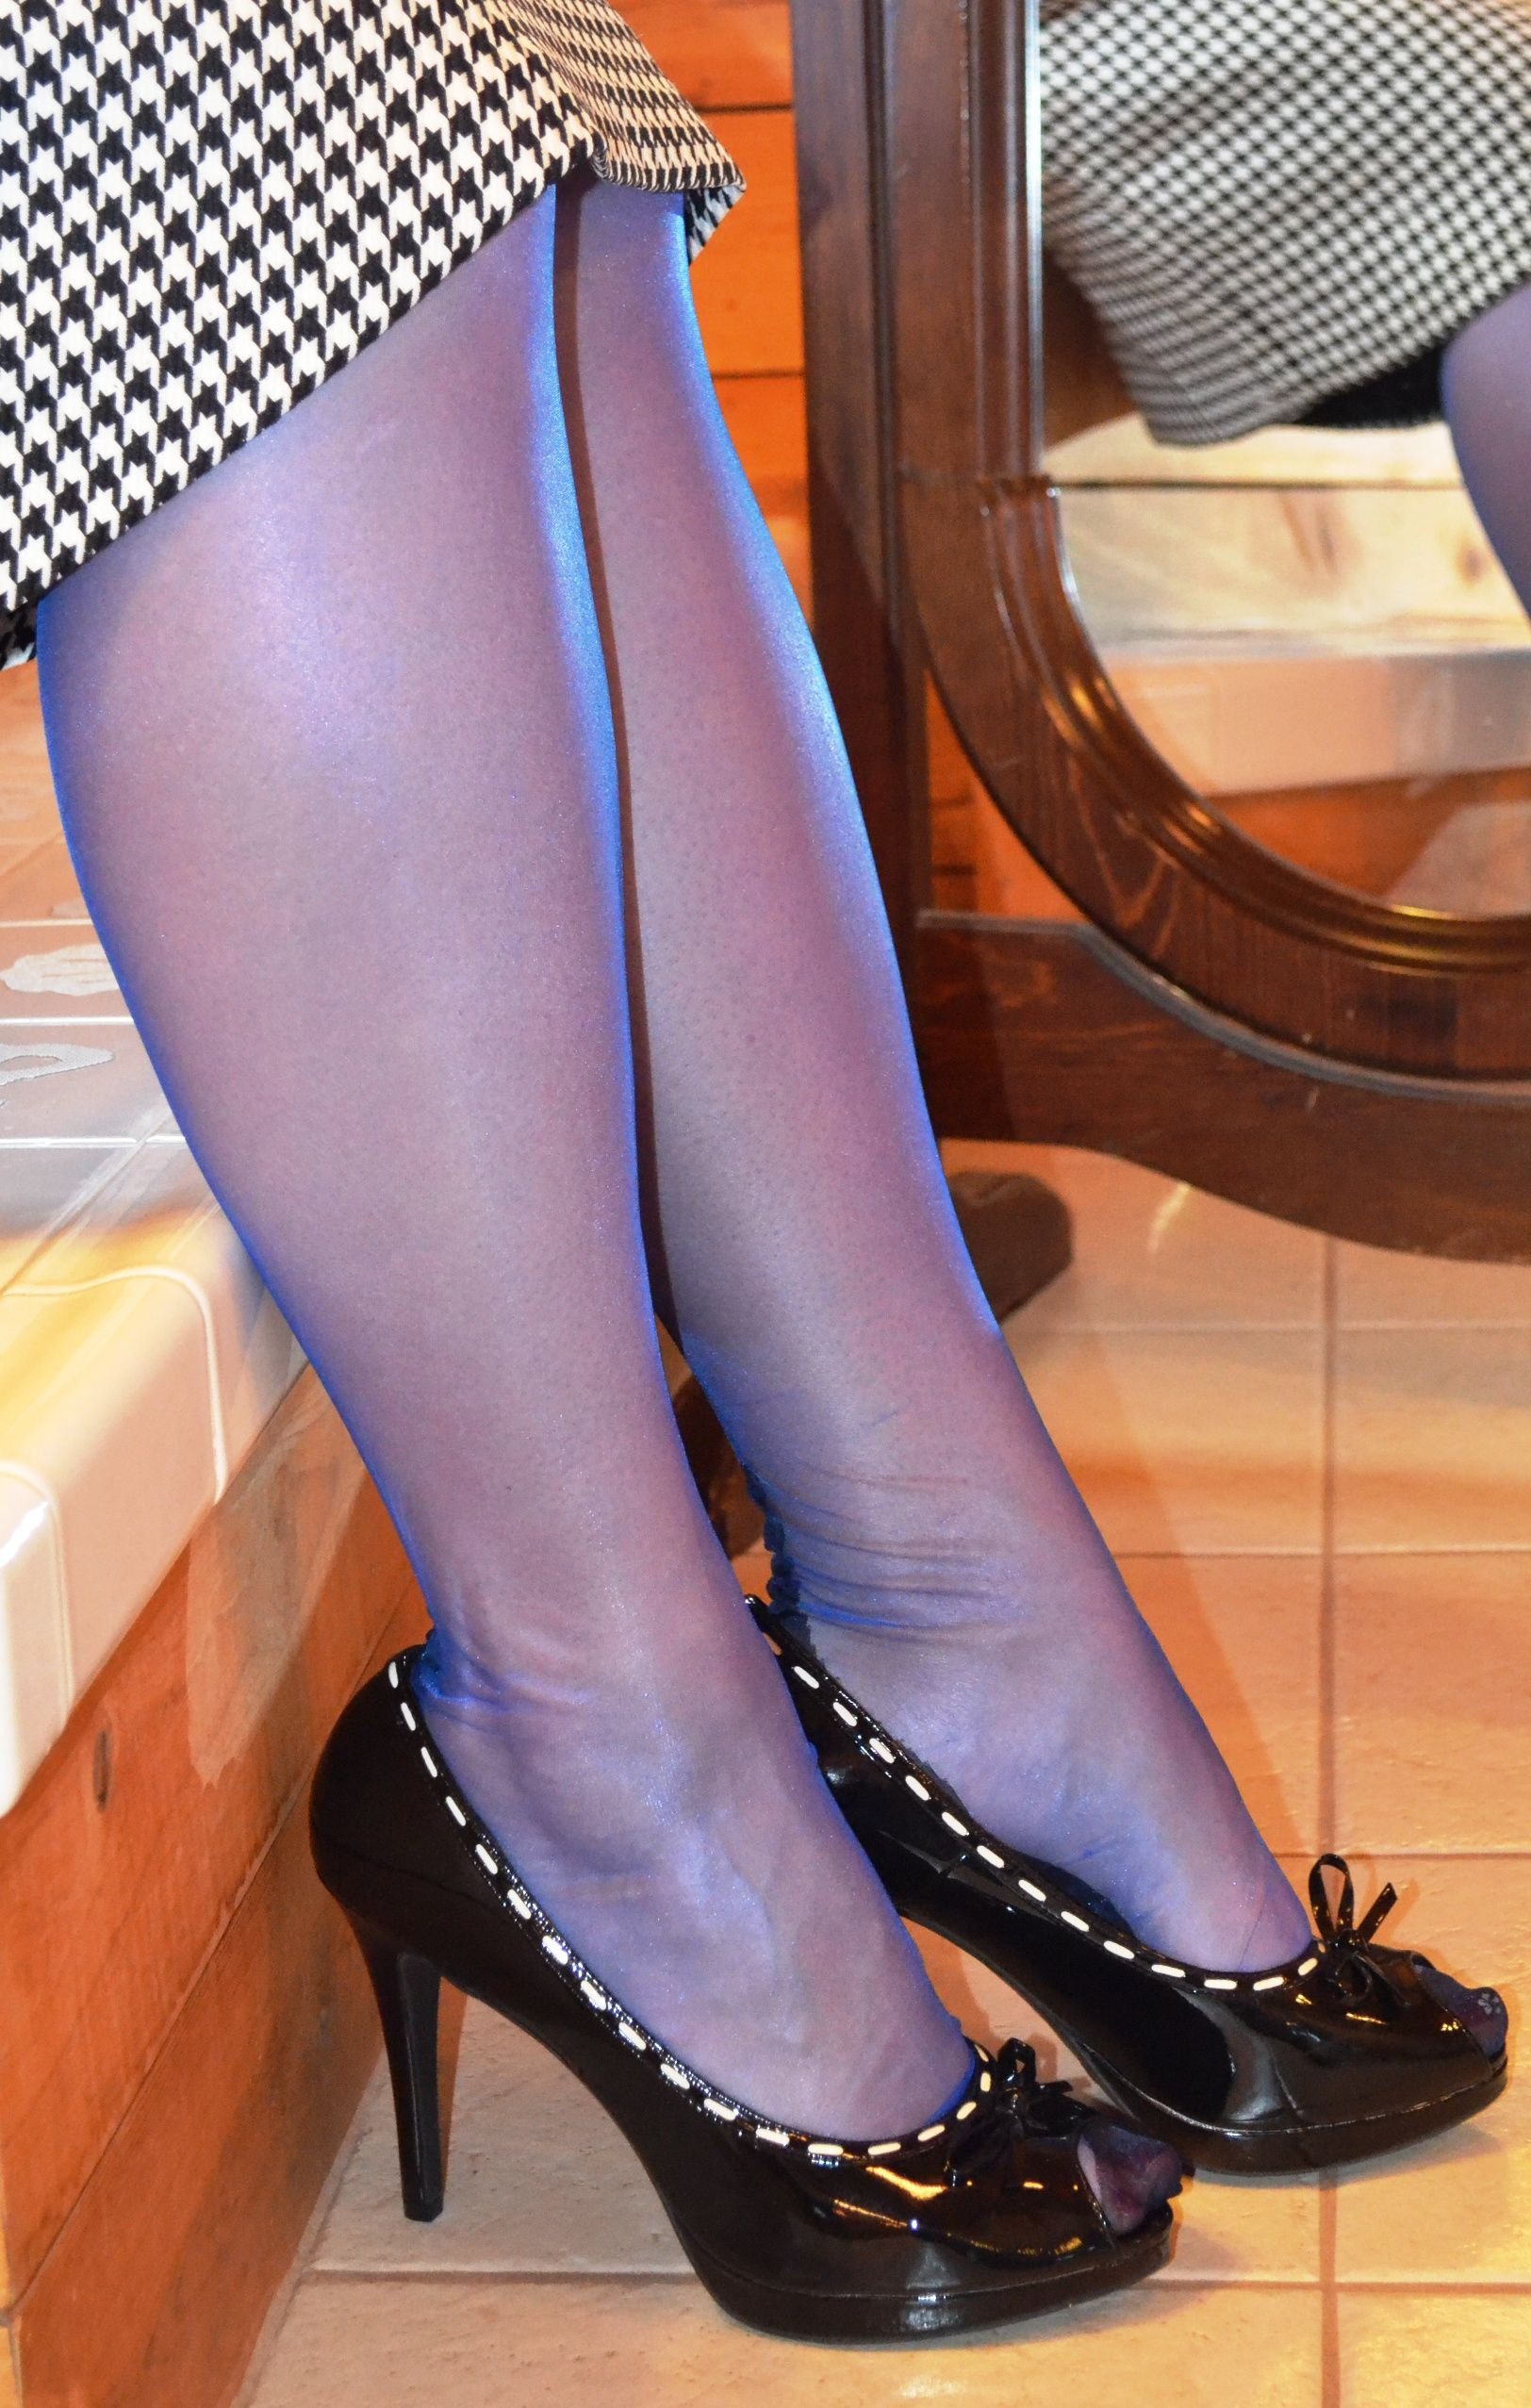 1e47b7eb657 Fully fashioned stockings made even better with dazzling color